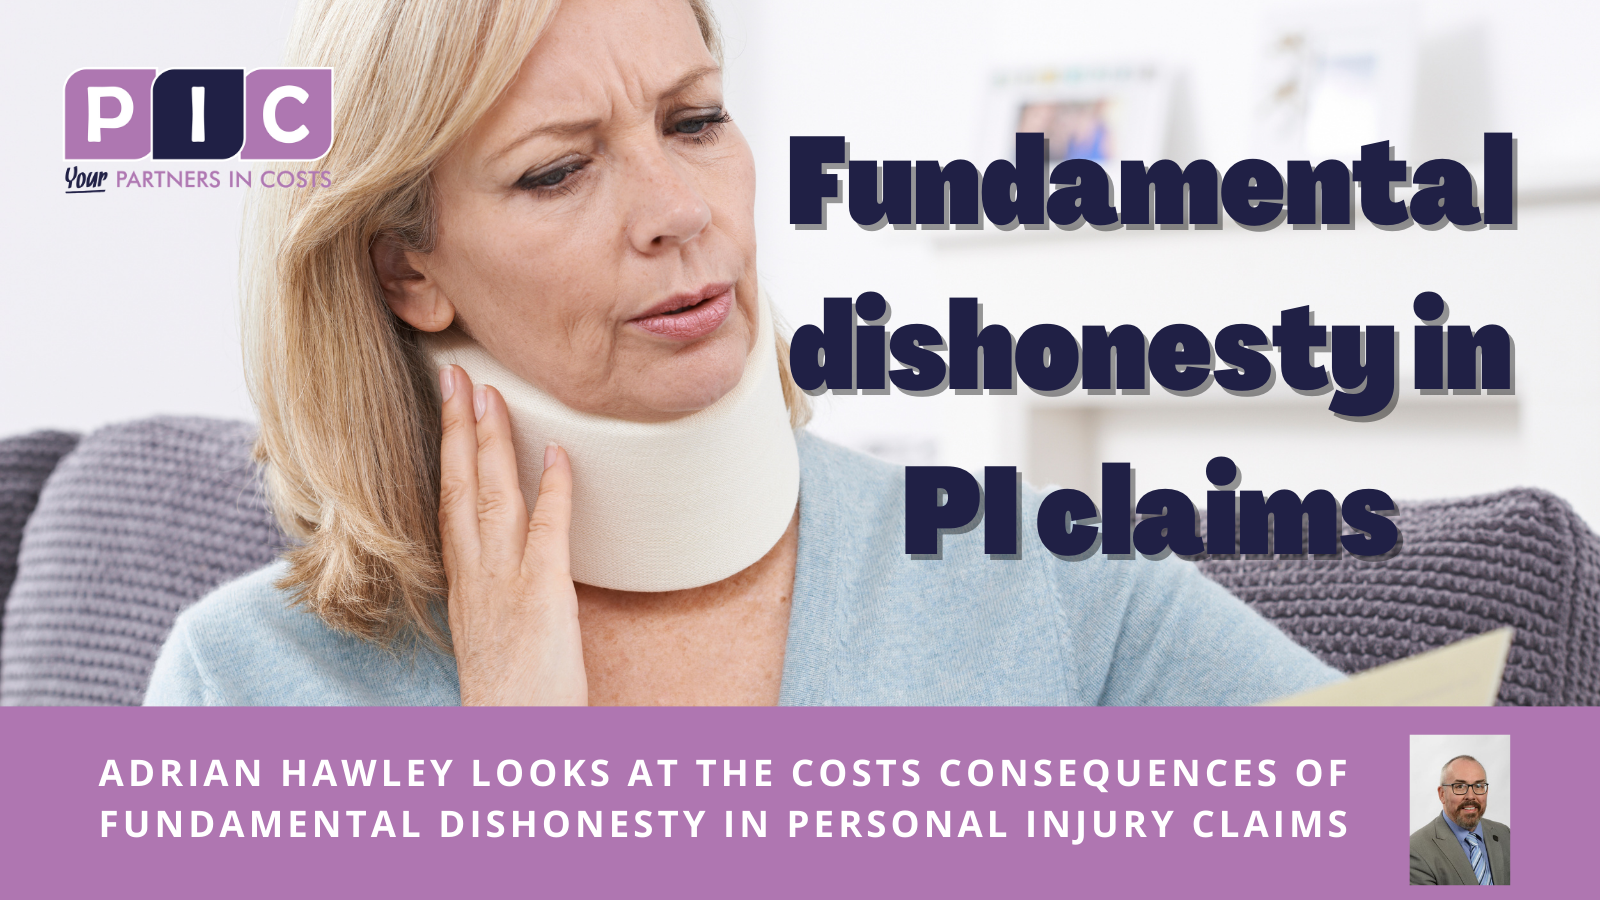 The costs consequences of fundamental dishonesty in personal injury claims